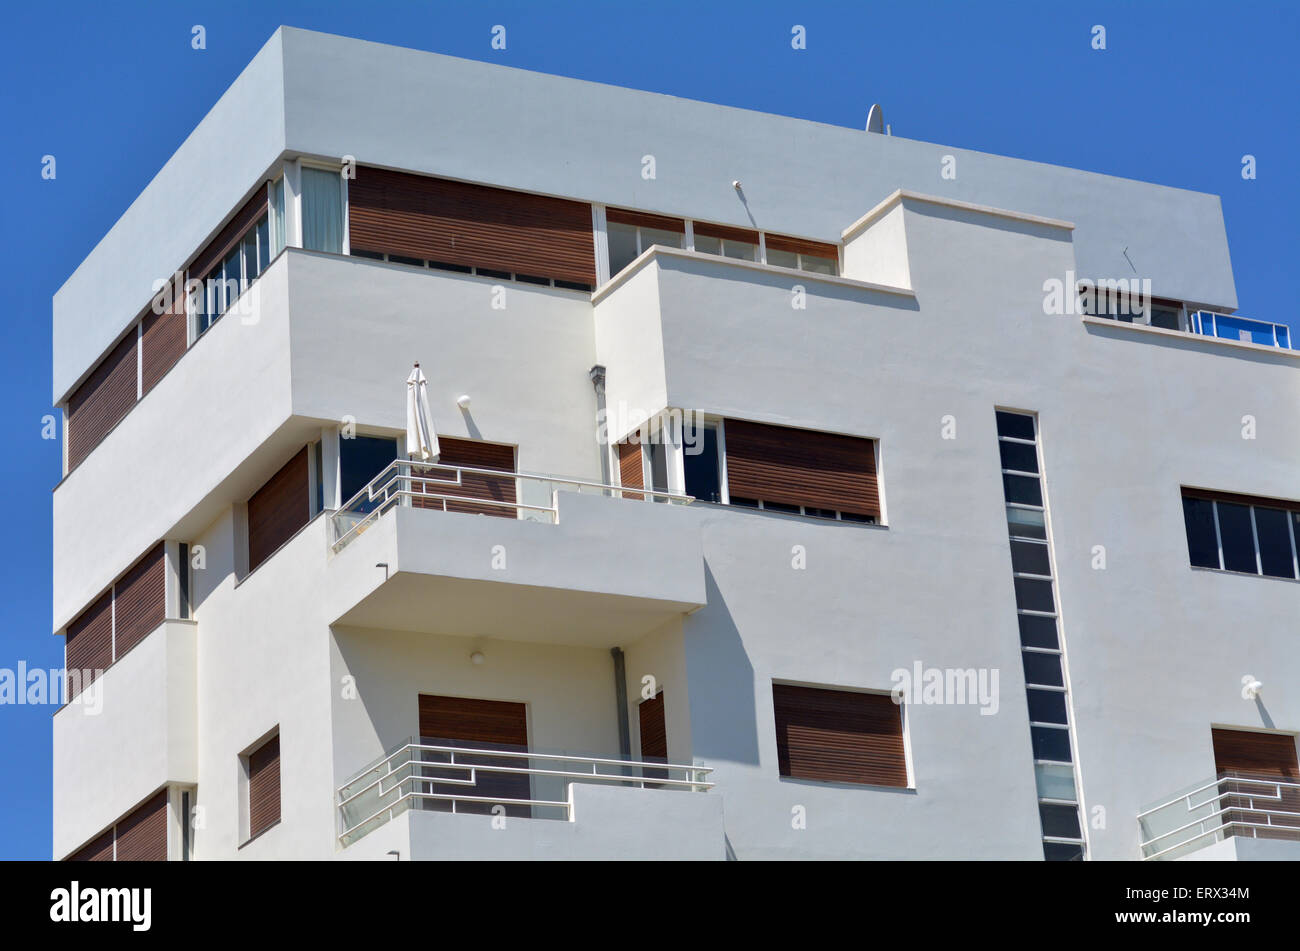 Bauhaus Architekt Bauhaus Architecture Stock Photos And Bauhaus Architecture